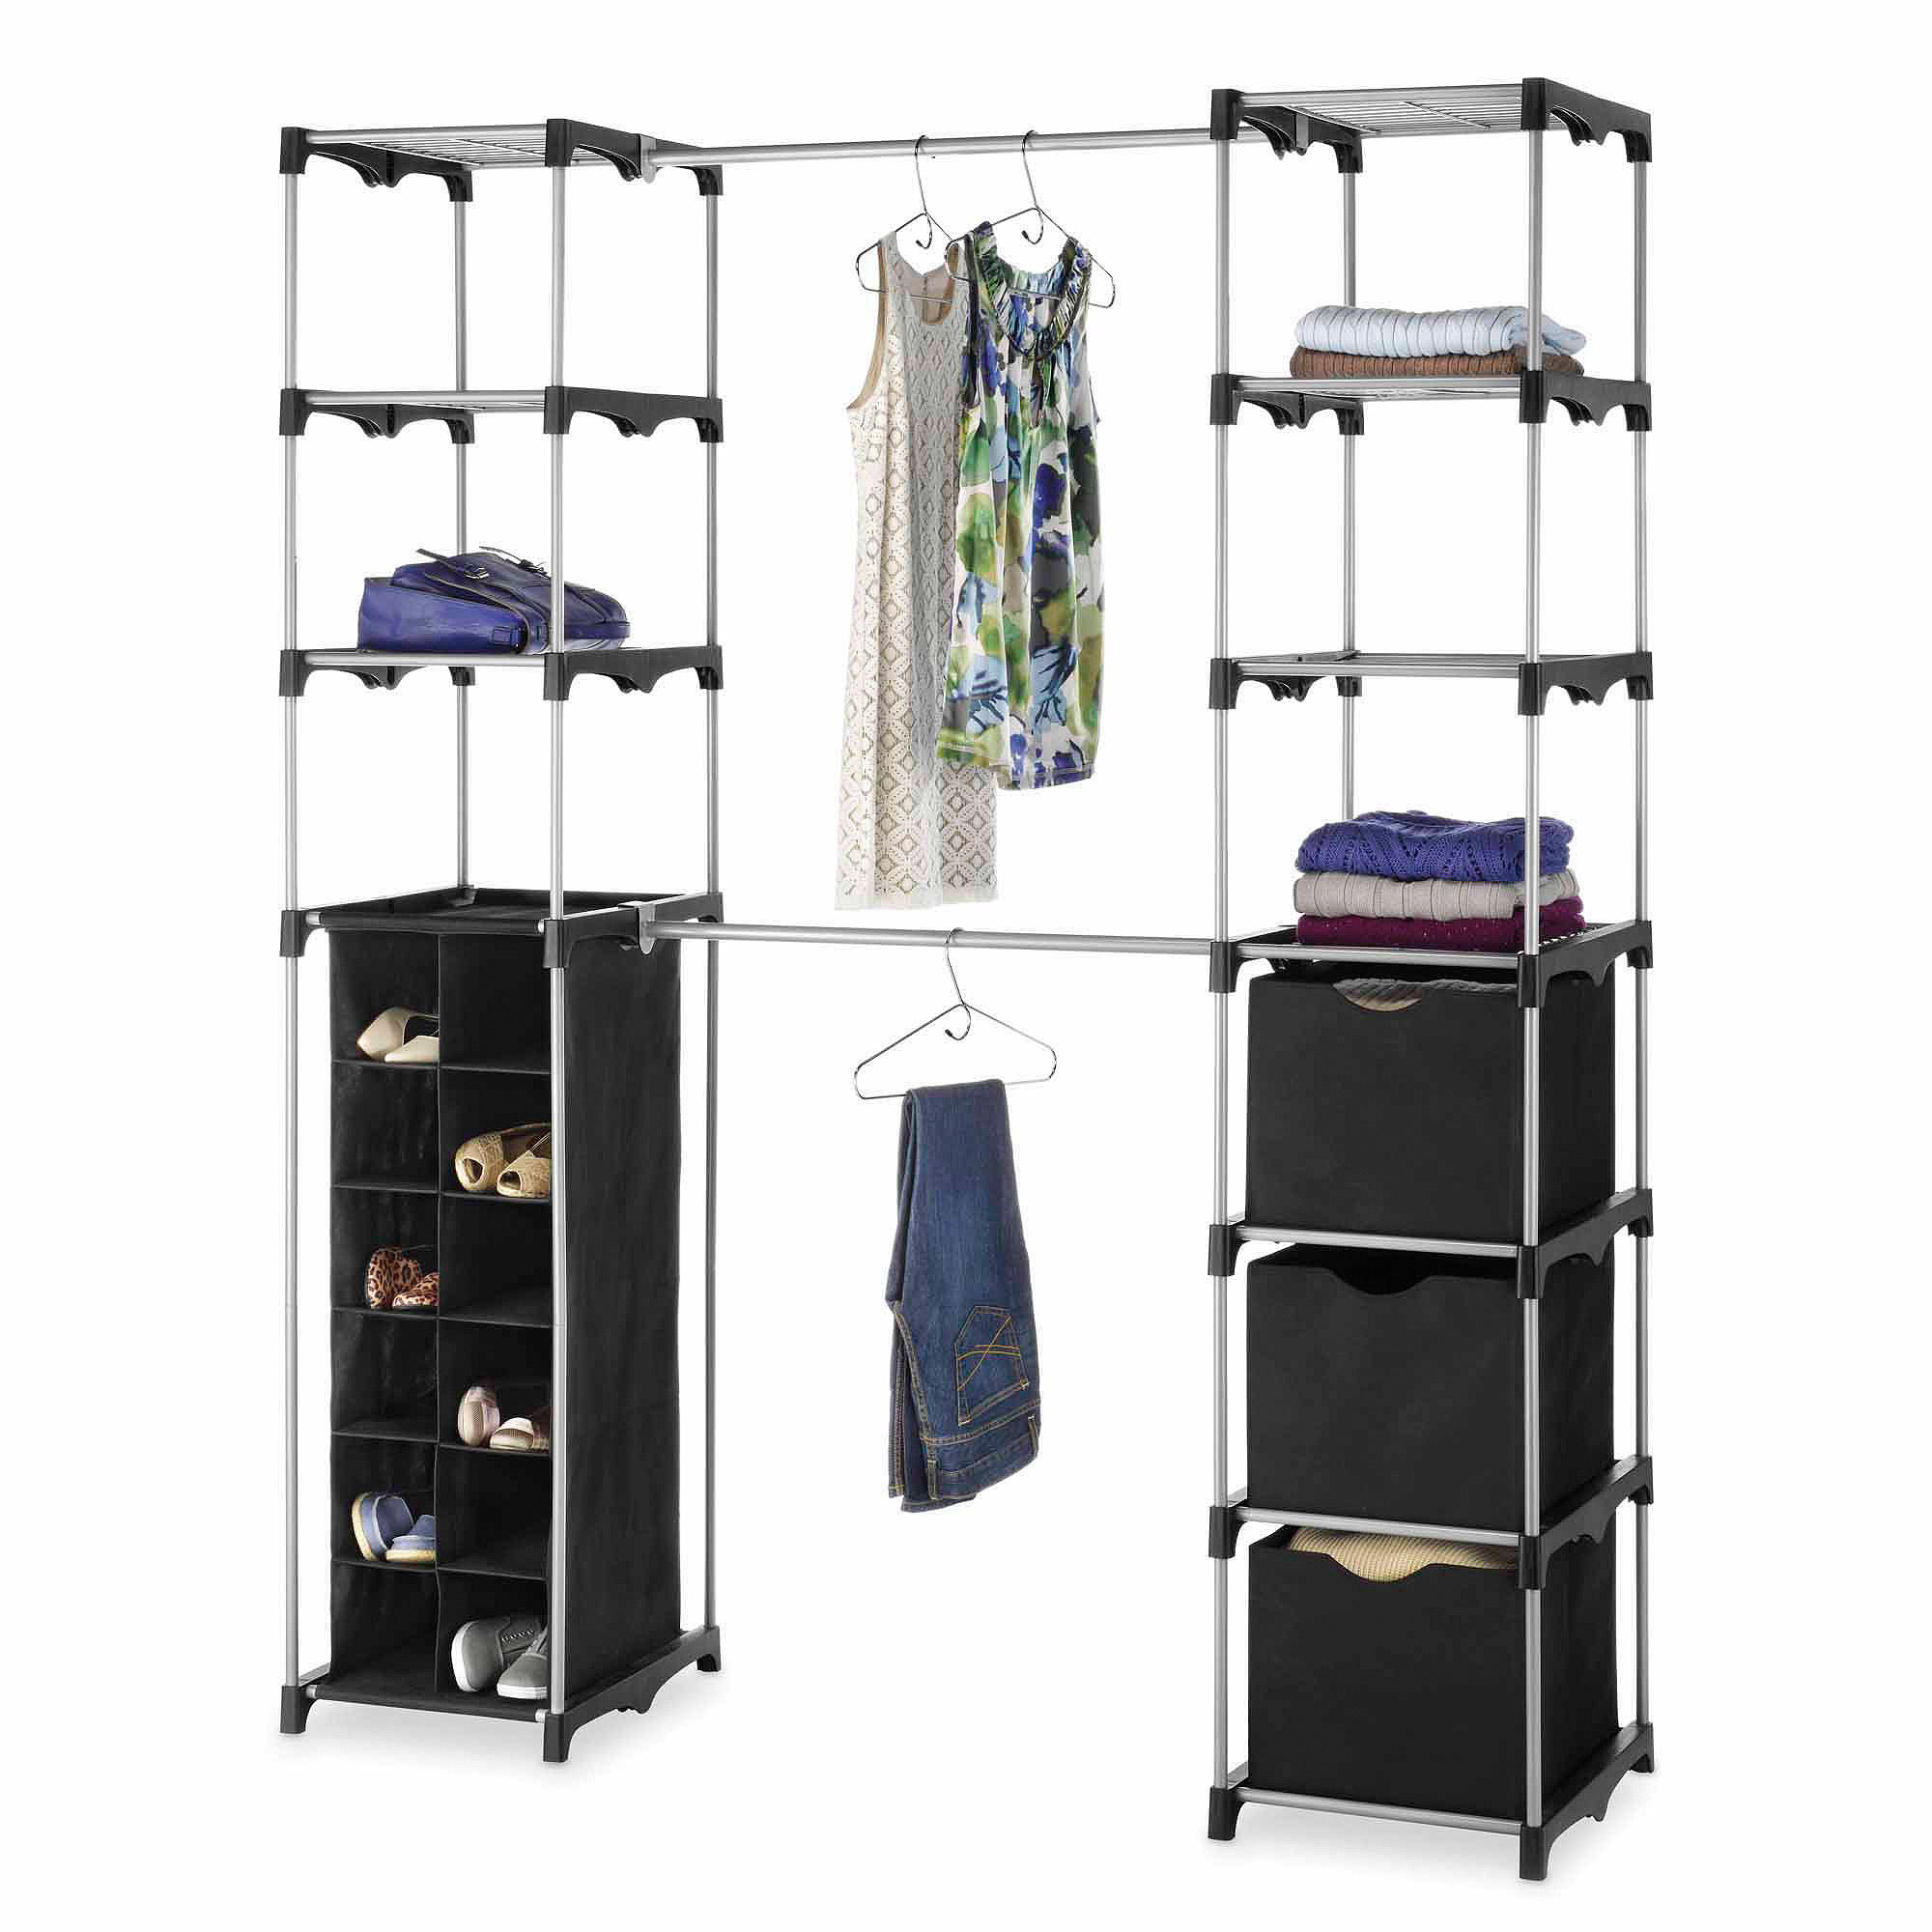 Whitmor Deluxe Double Rod Organizer